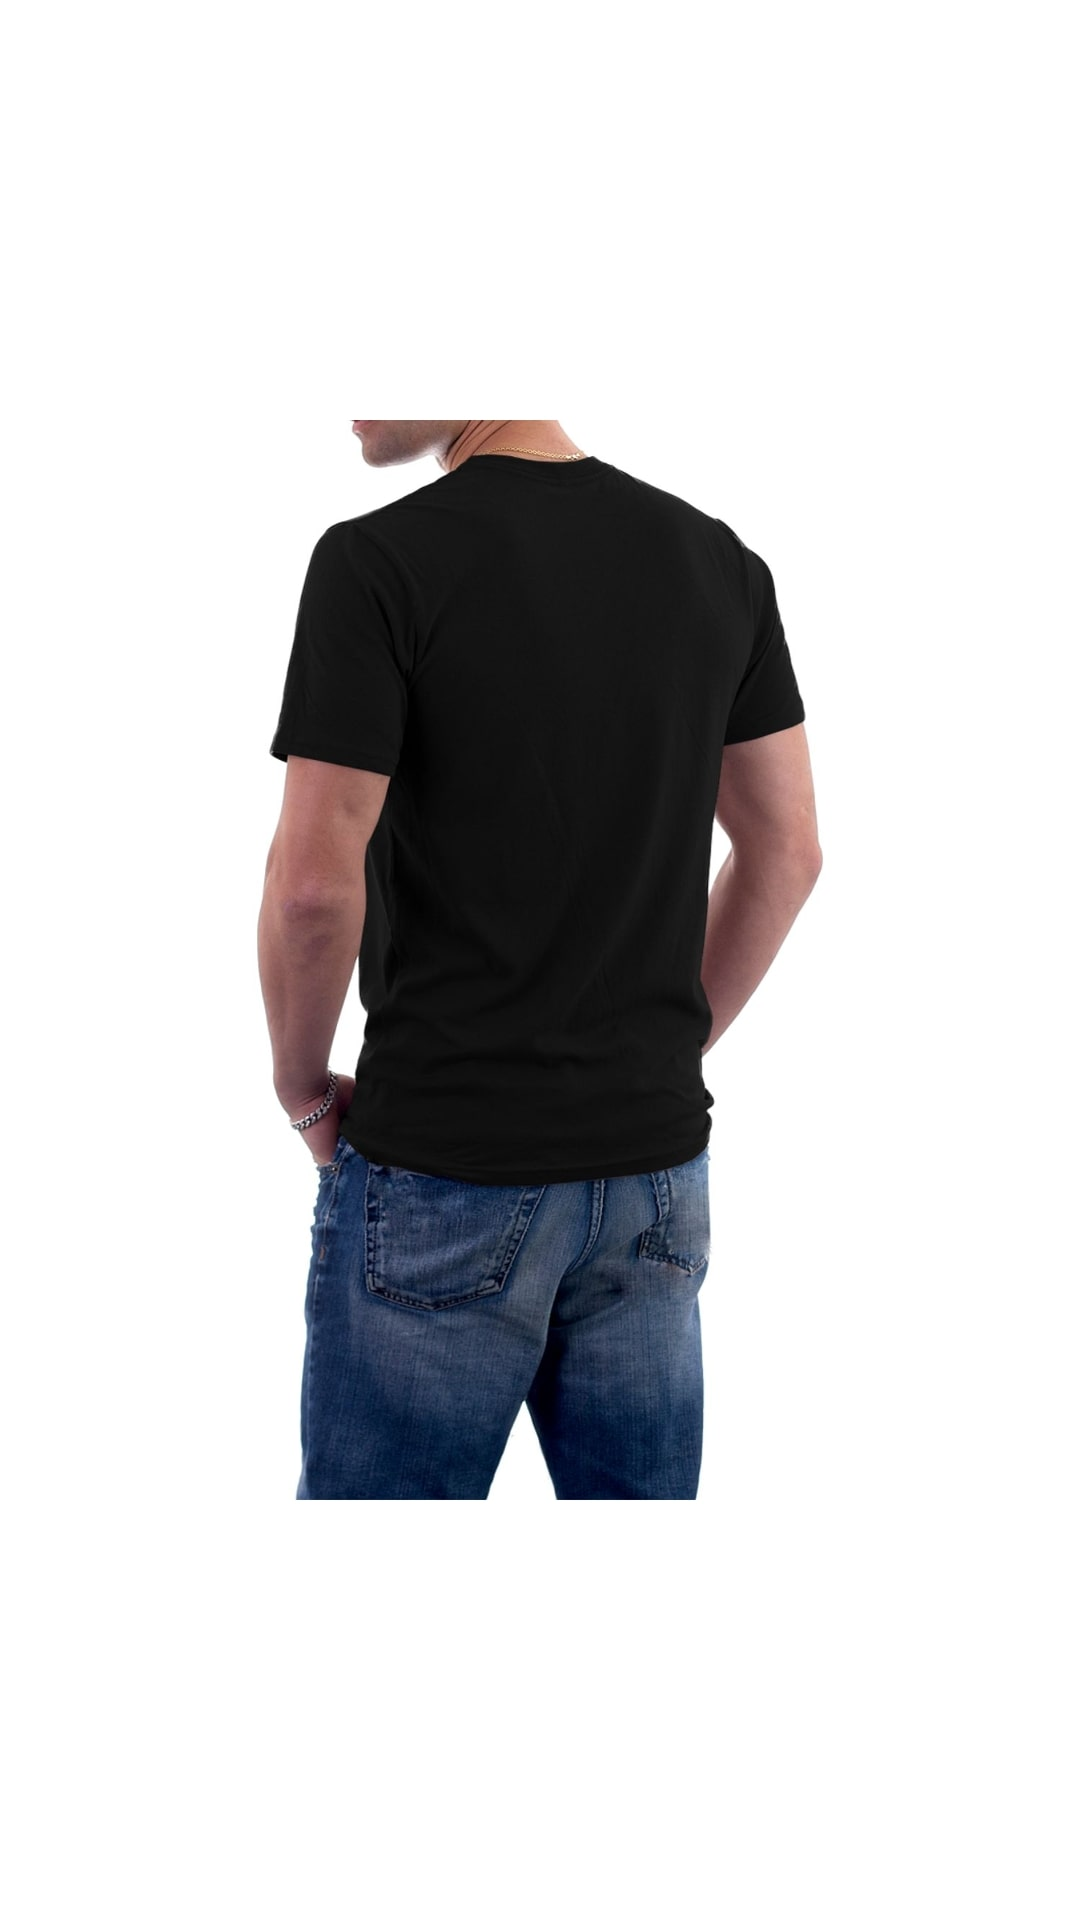 d5fc39c6 Buy UNIPLANET STORE Men Regular fit Round neck Printed T-Shirt - Black  Online at Low Prices in India - Paytmmall.com